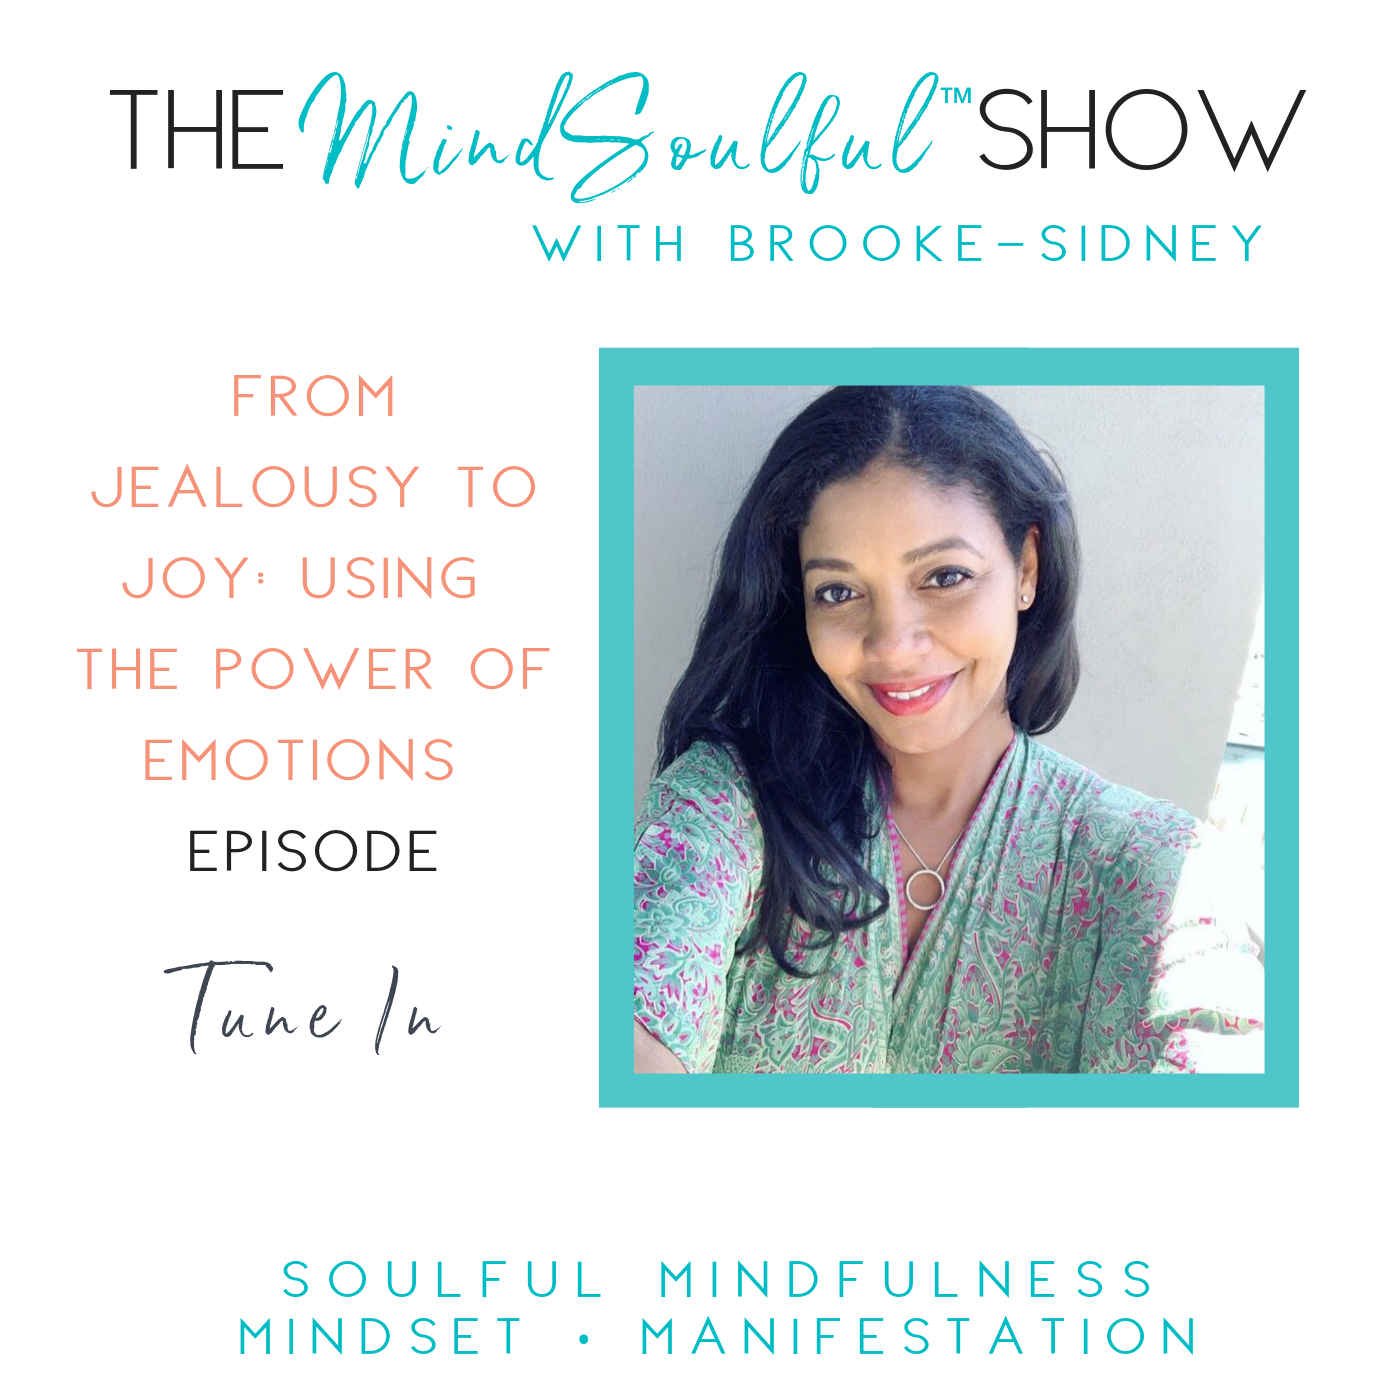 The MindSoulful Show - FROM JEALOUSY TO JOY_ USING THE POWER OF EMOTIONS EPISODE.png